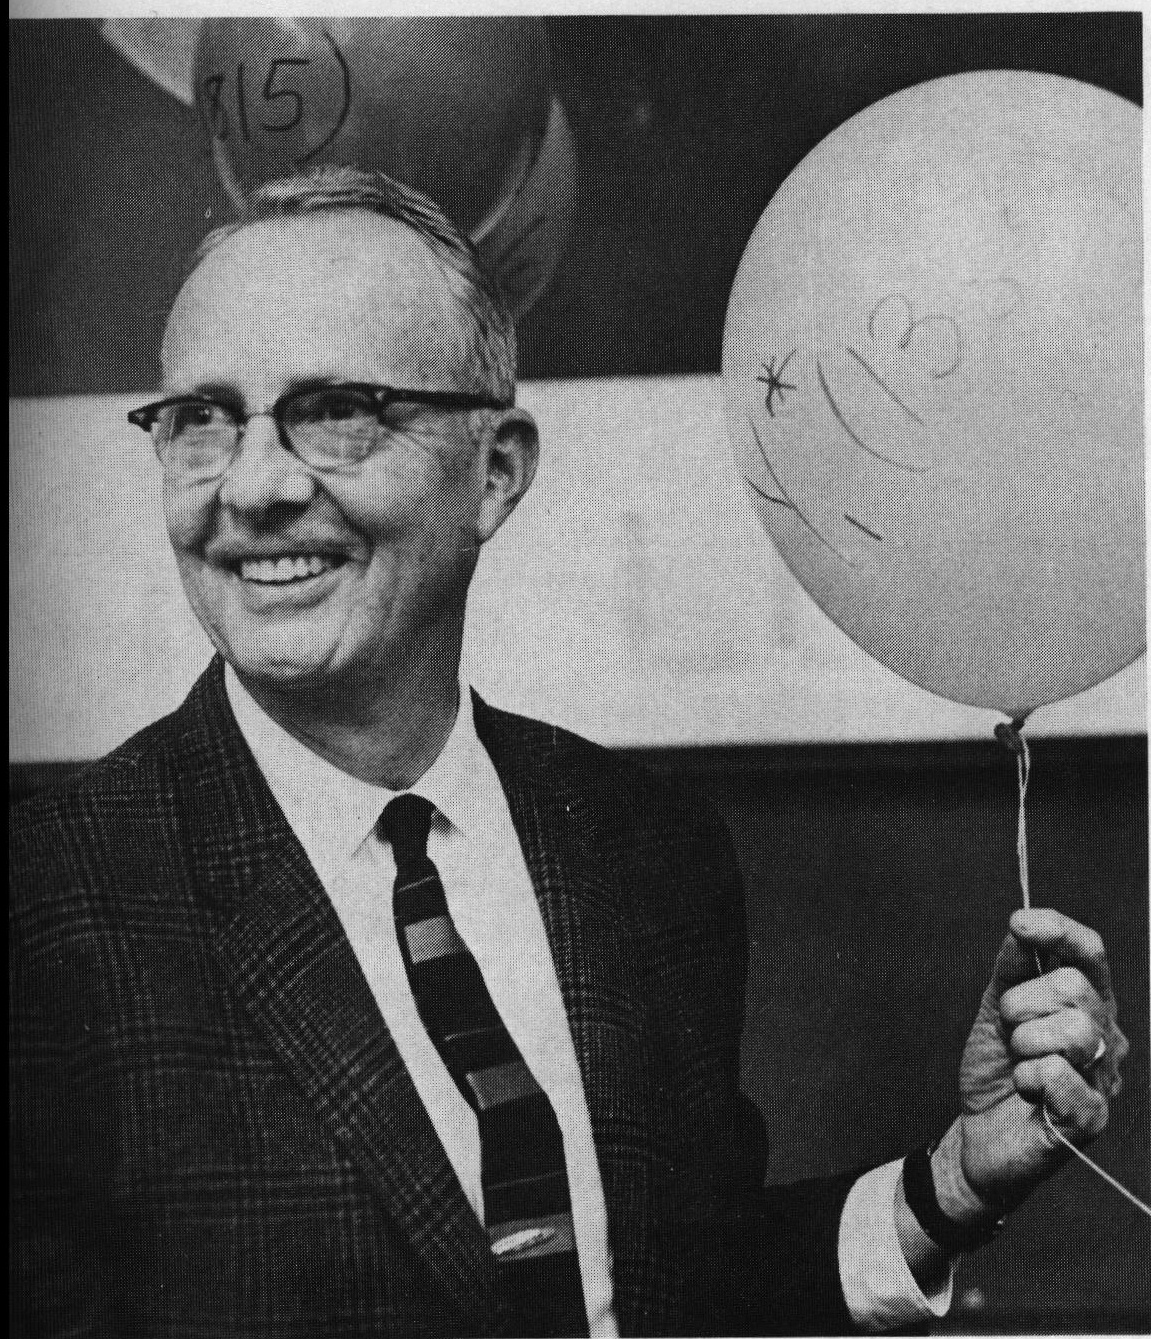 https://upload.wikimedia.org/wikipedia/commons/9/98/Luis_Alvarez_-_Nobel_with_Balloon.jpg